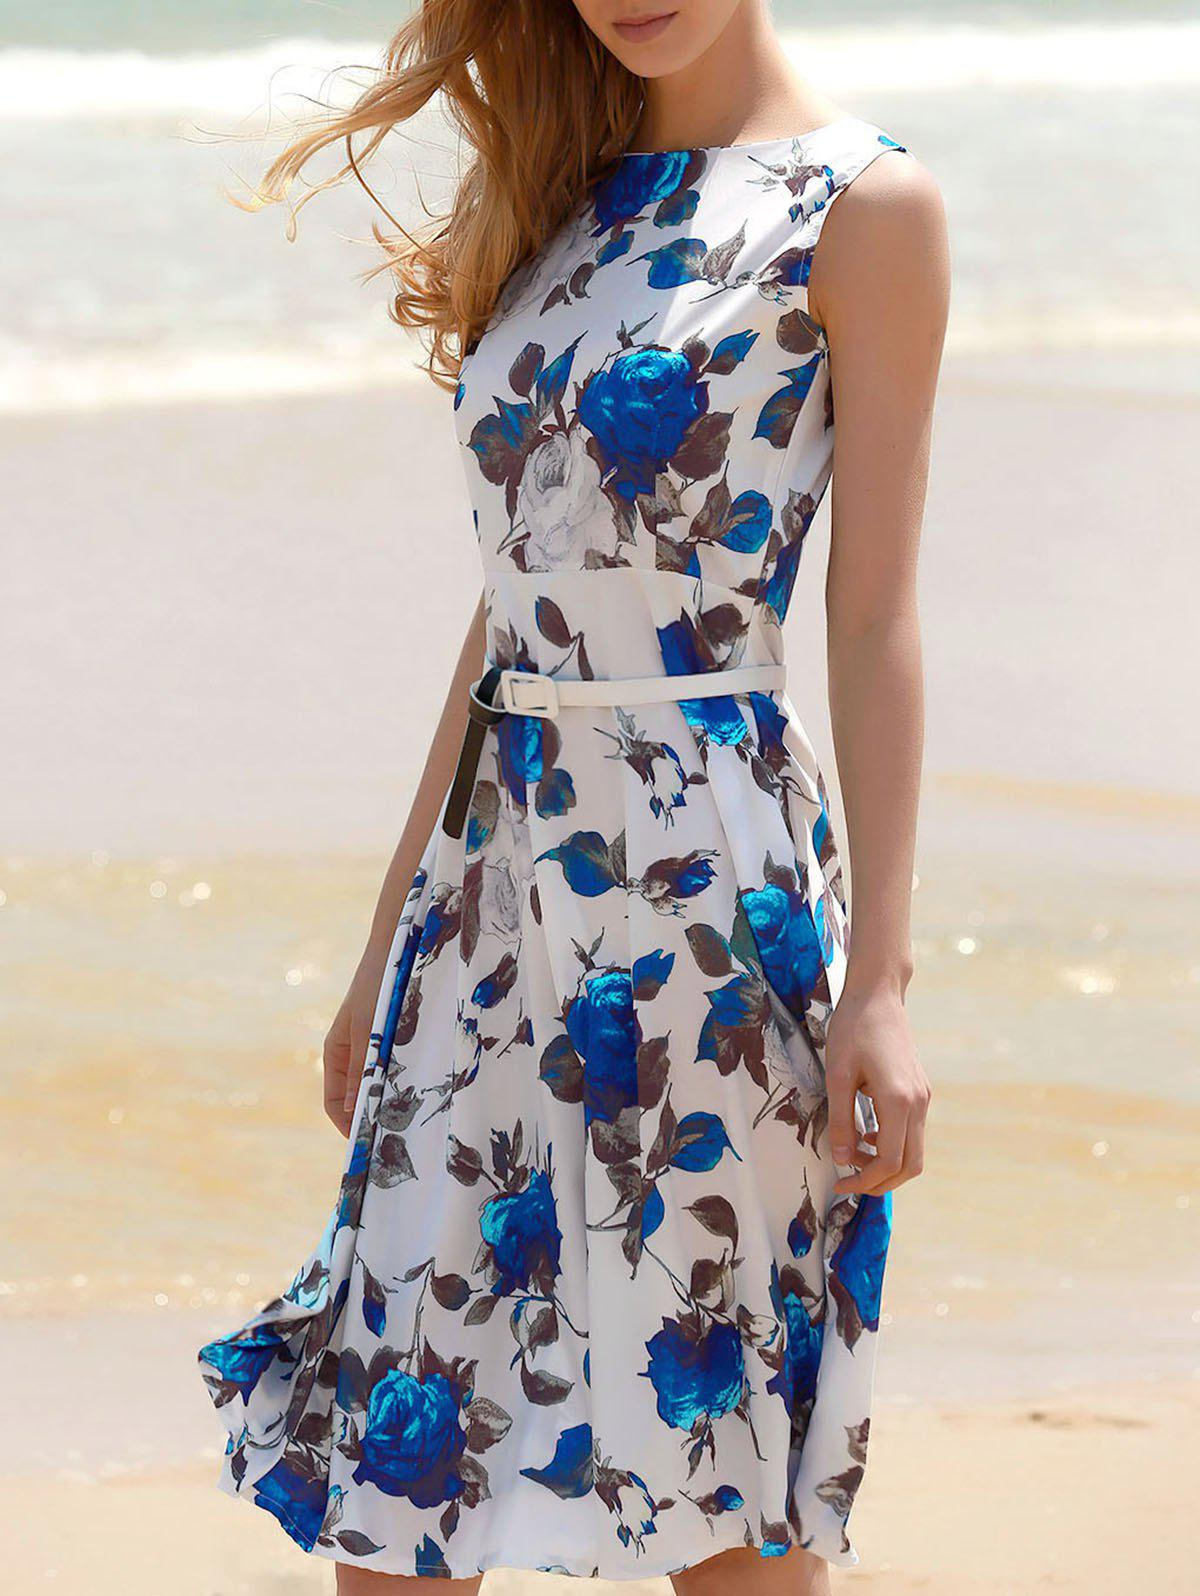 Vintage Sleeveless Floral Print Belted Dress For Women